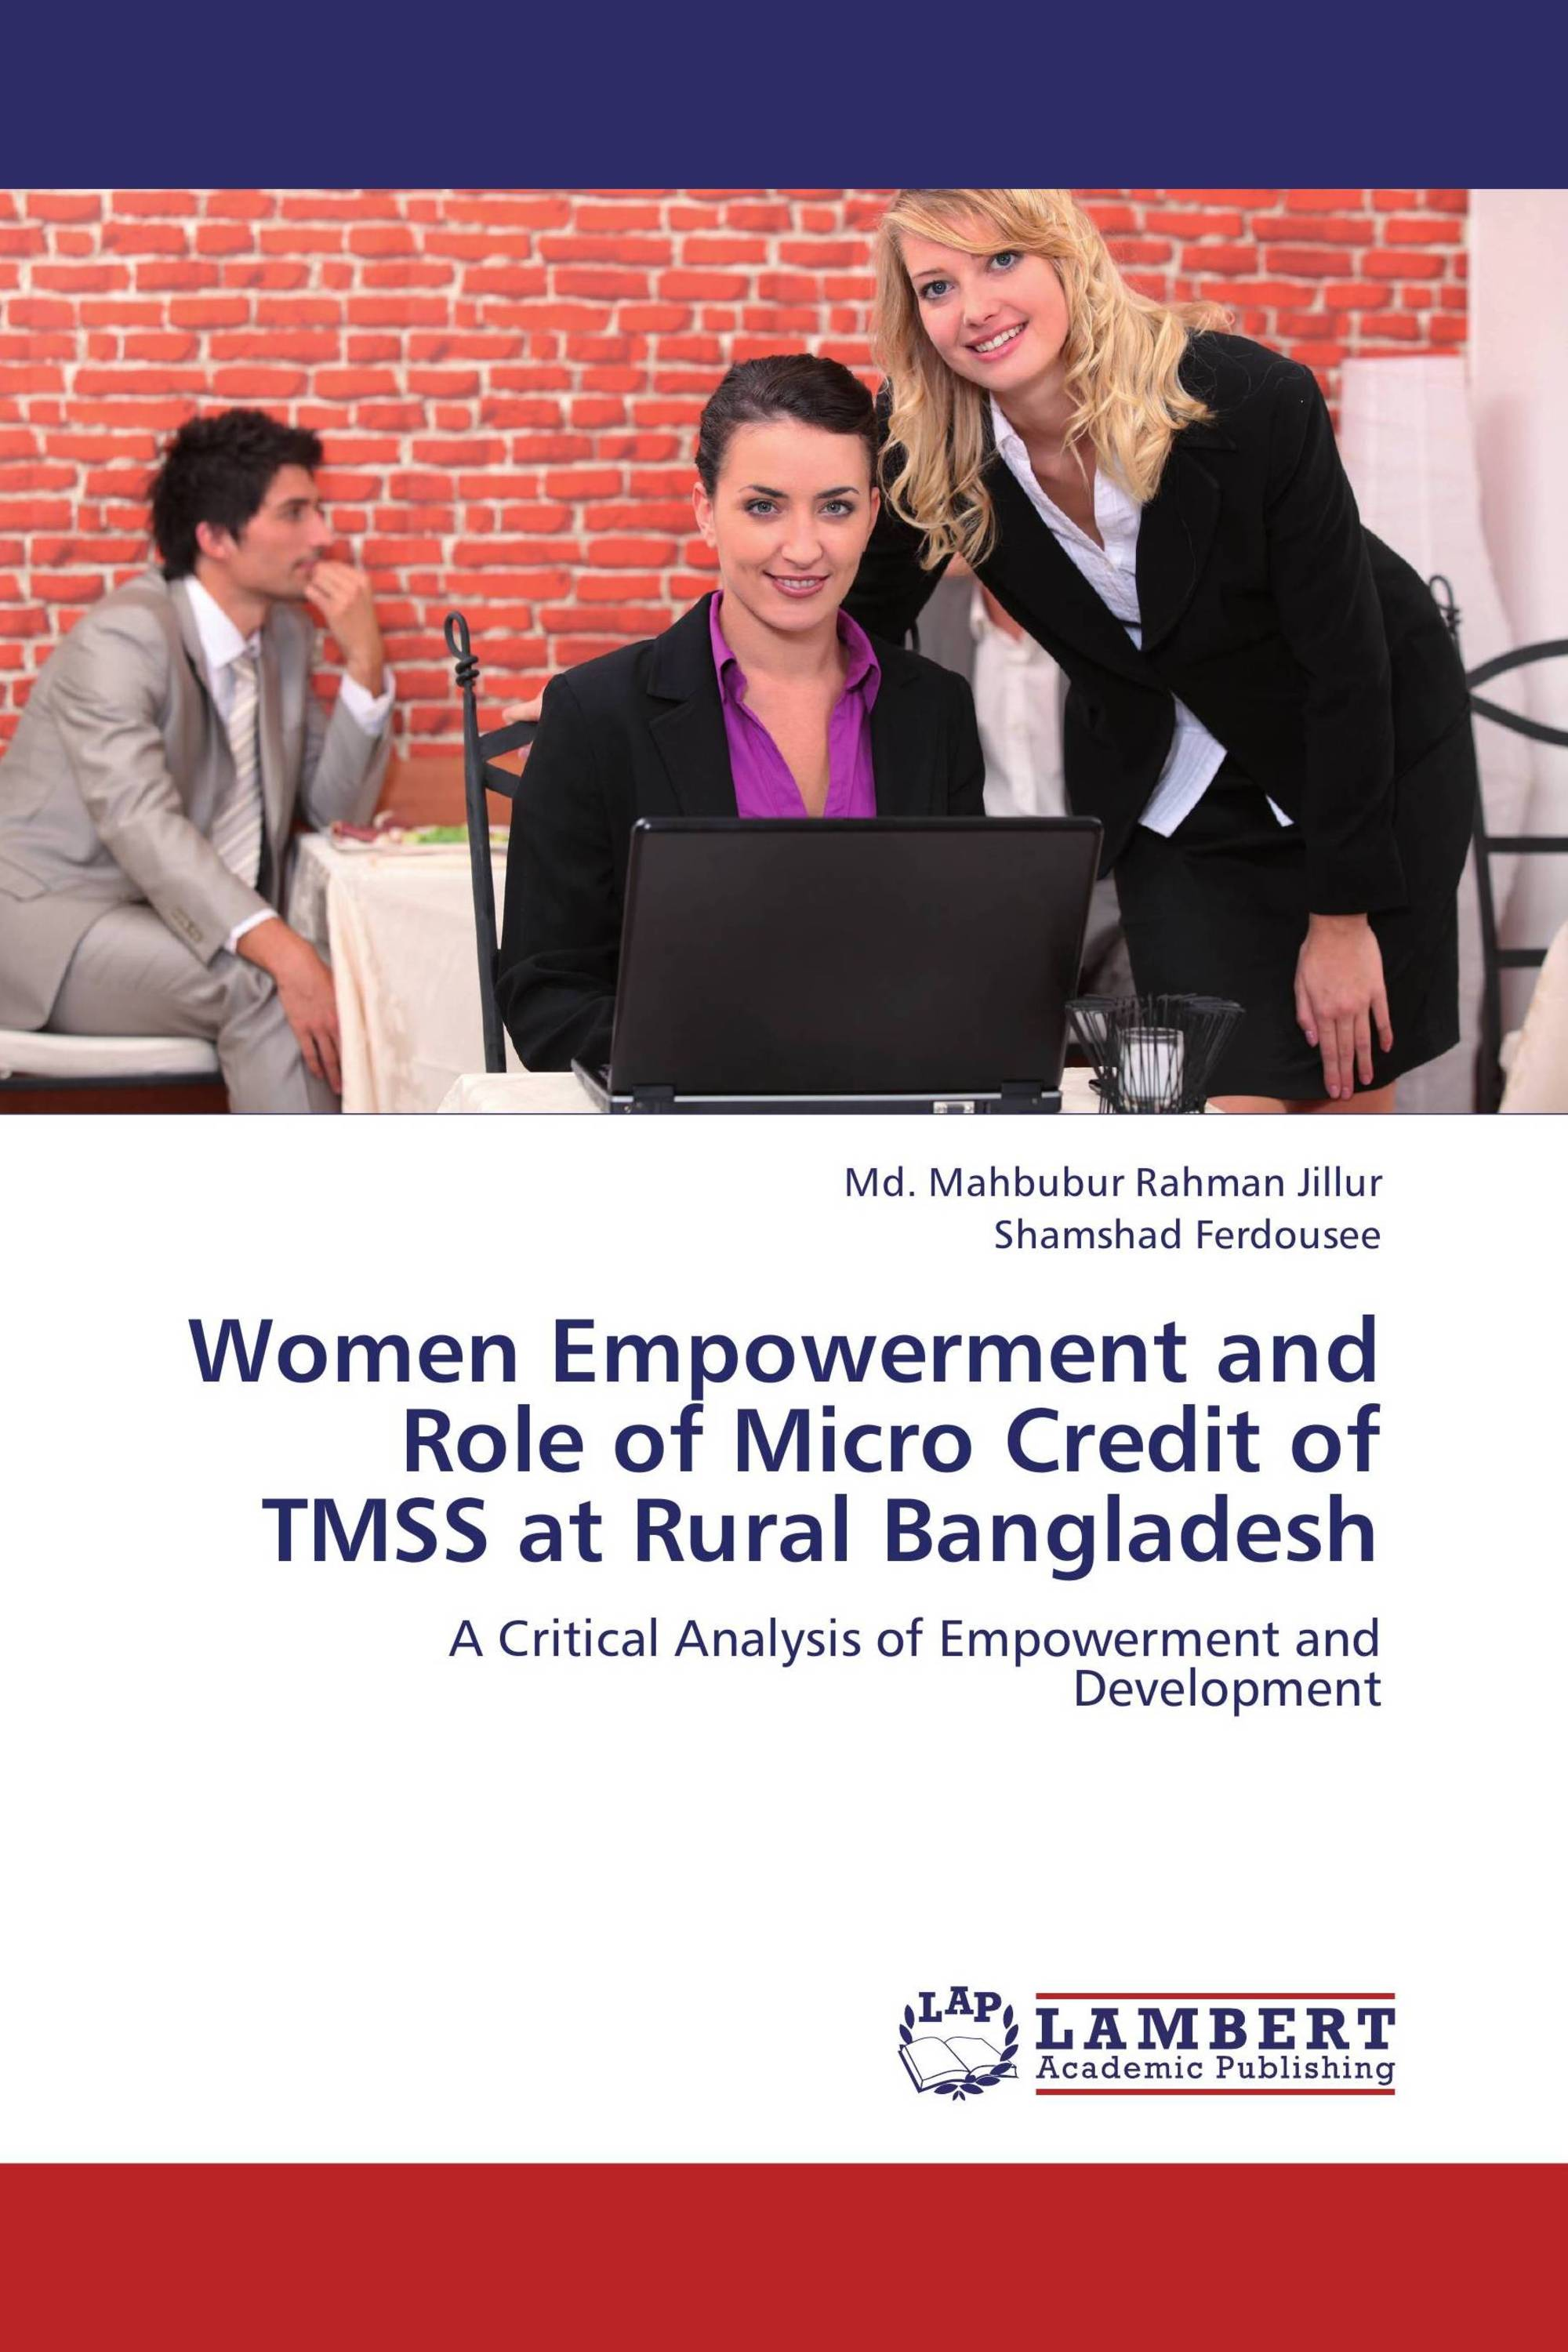 Women Empowerment and Role of Micro Credit of TMSS at Rural Bangladesh